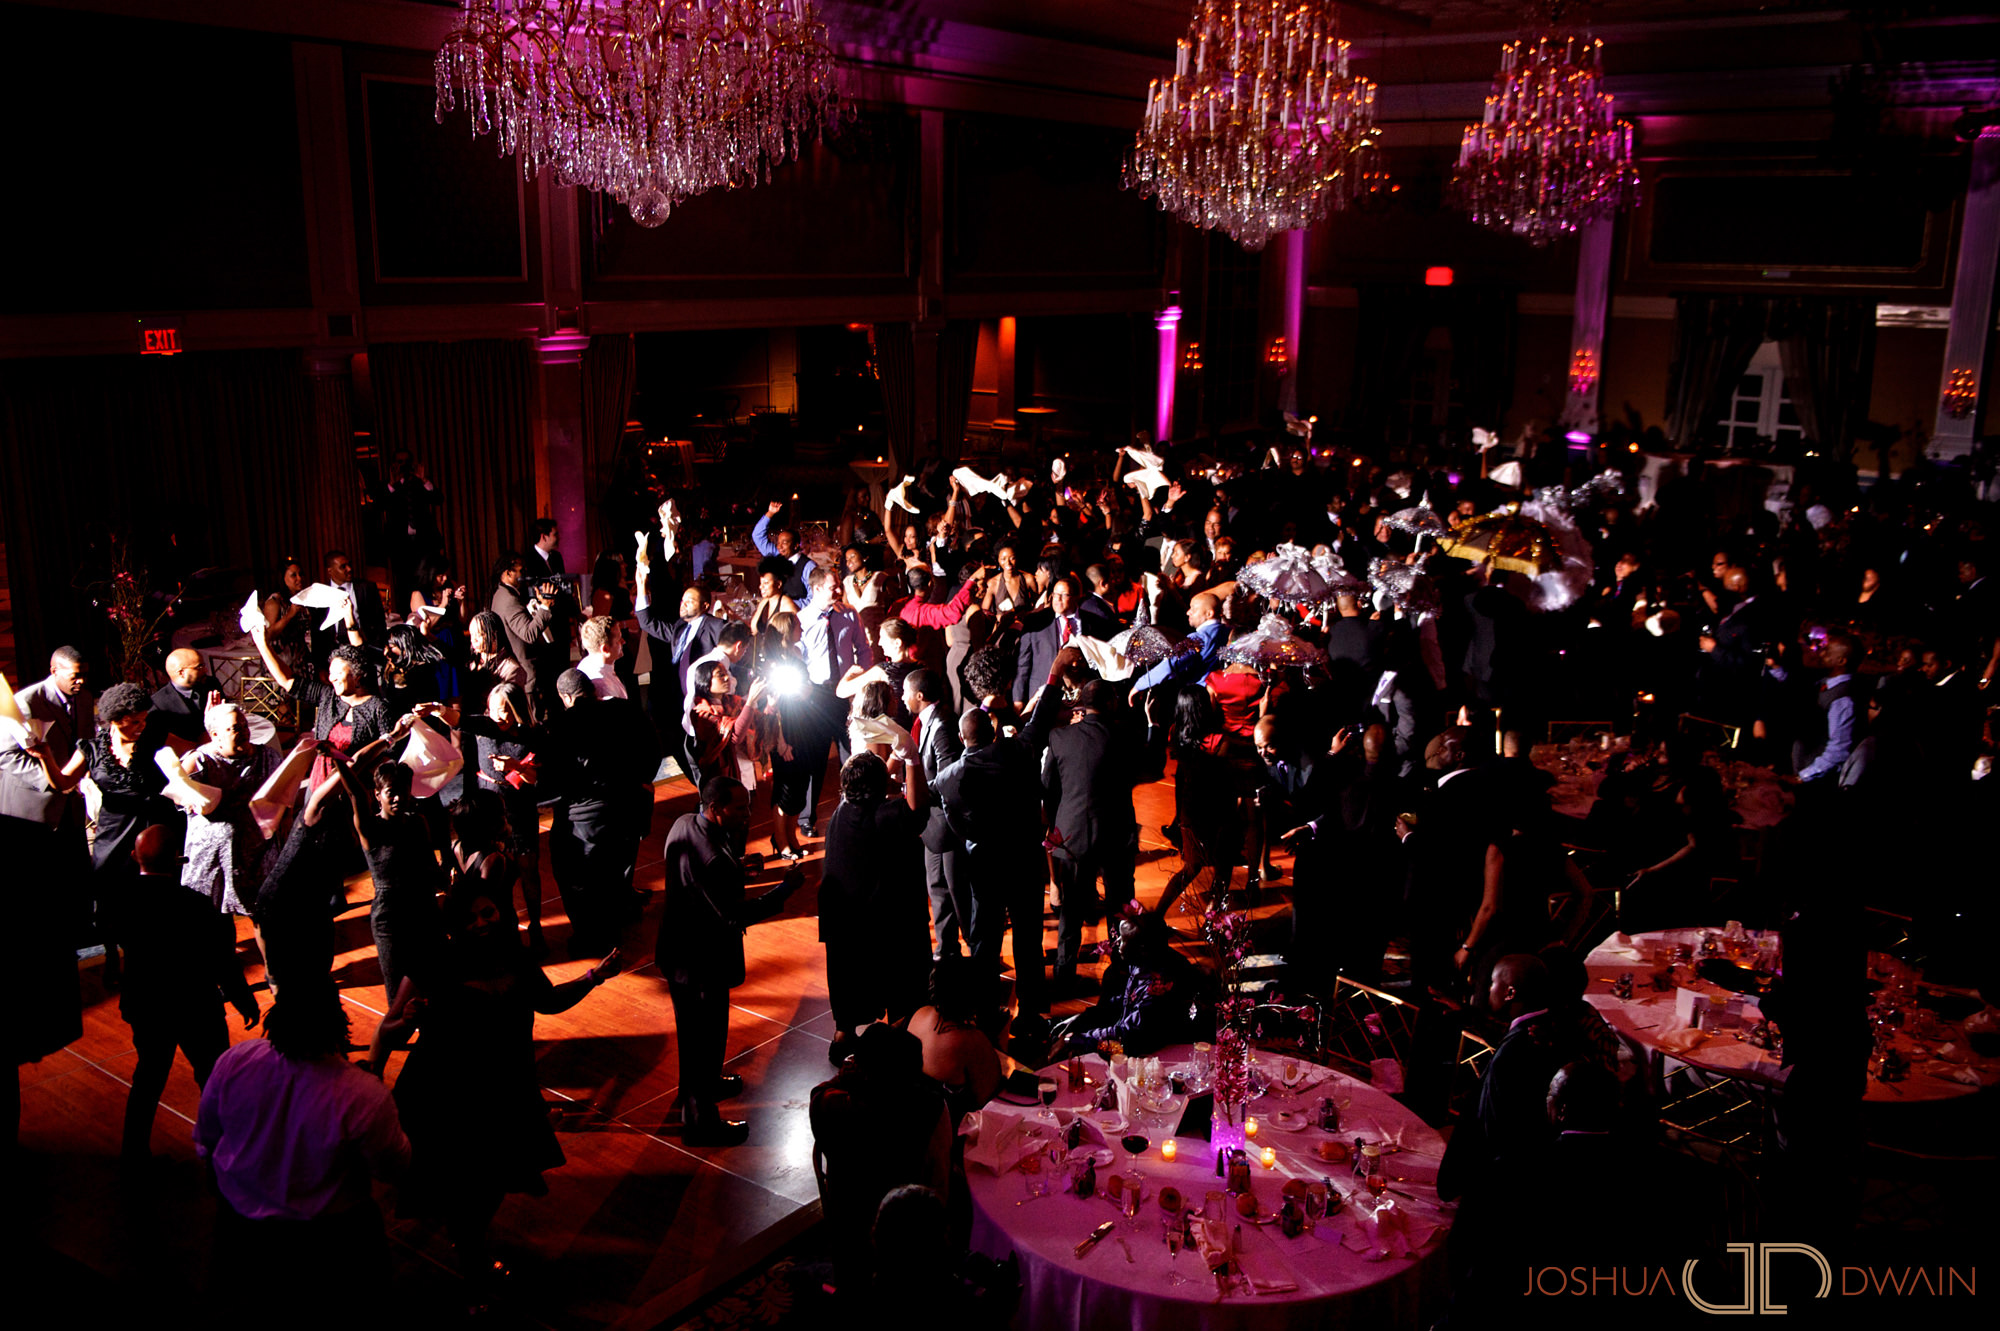 carol-shiloh-020-the-palace-somerset-new-jerseywedding-photographer-joshua-dwain-2011-11-25_cs_798